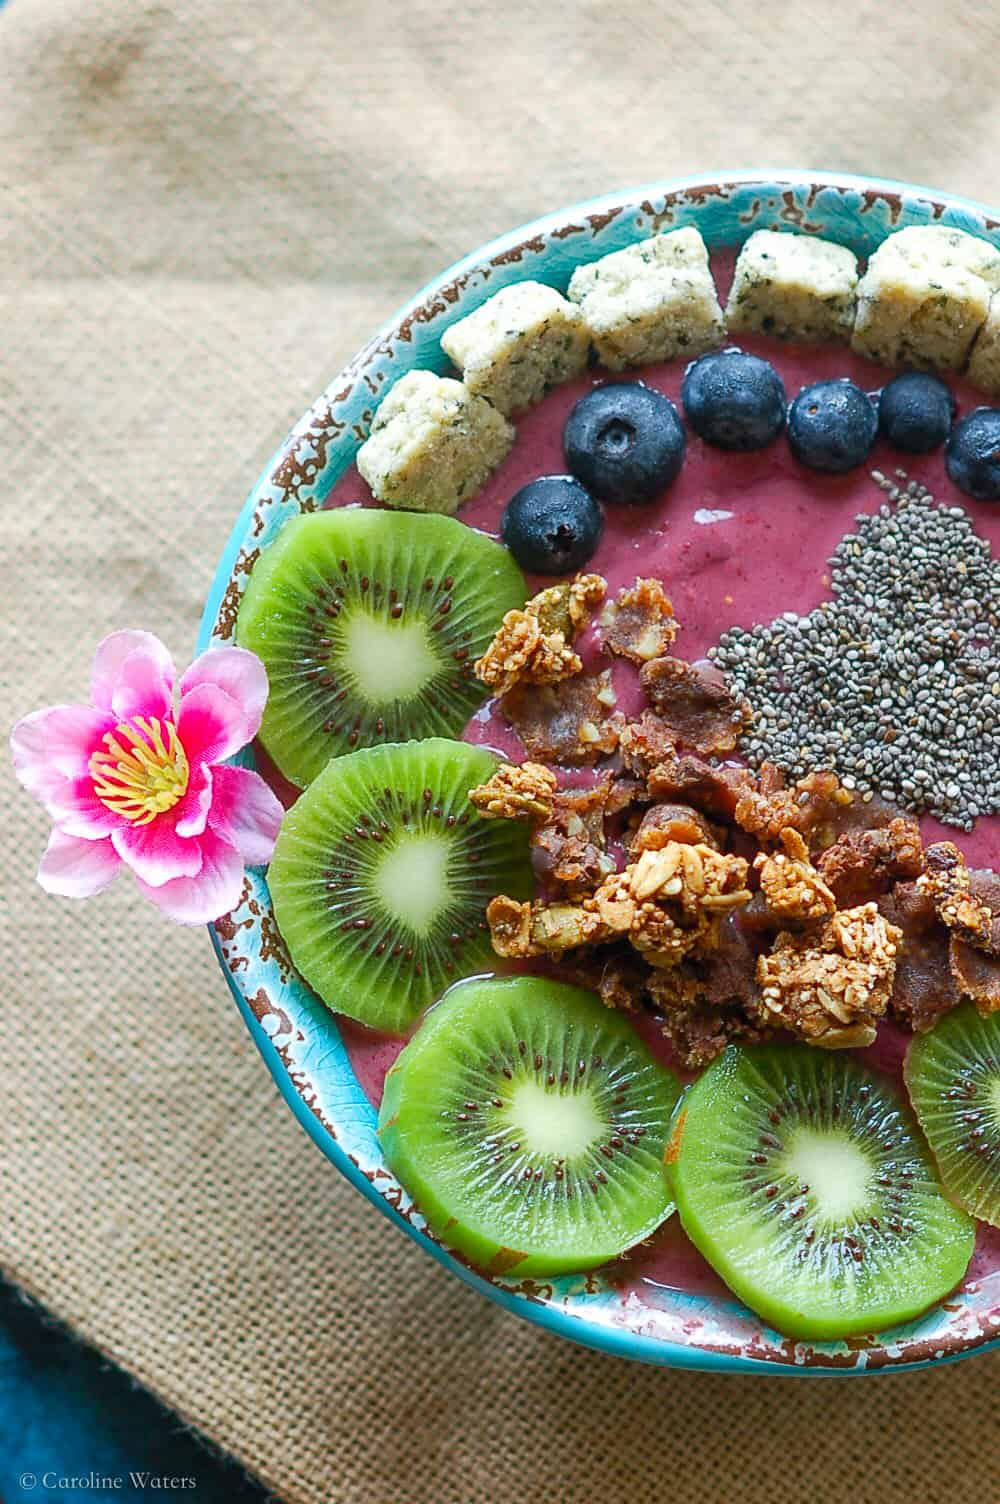 Pretty 'n Tasty Acai bowl (v)